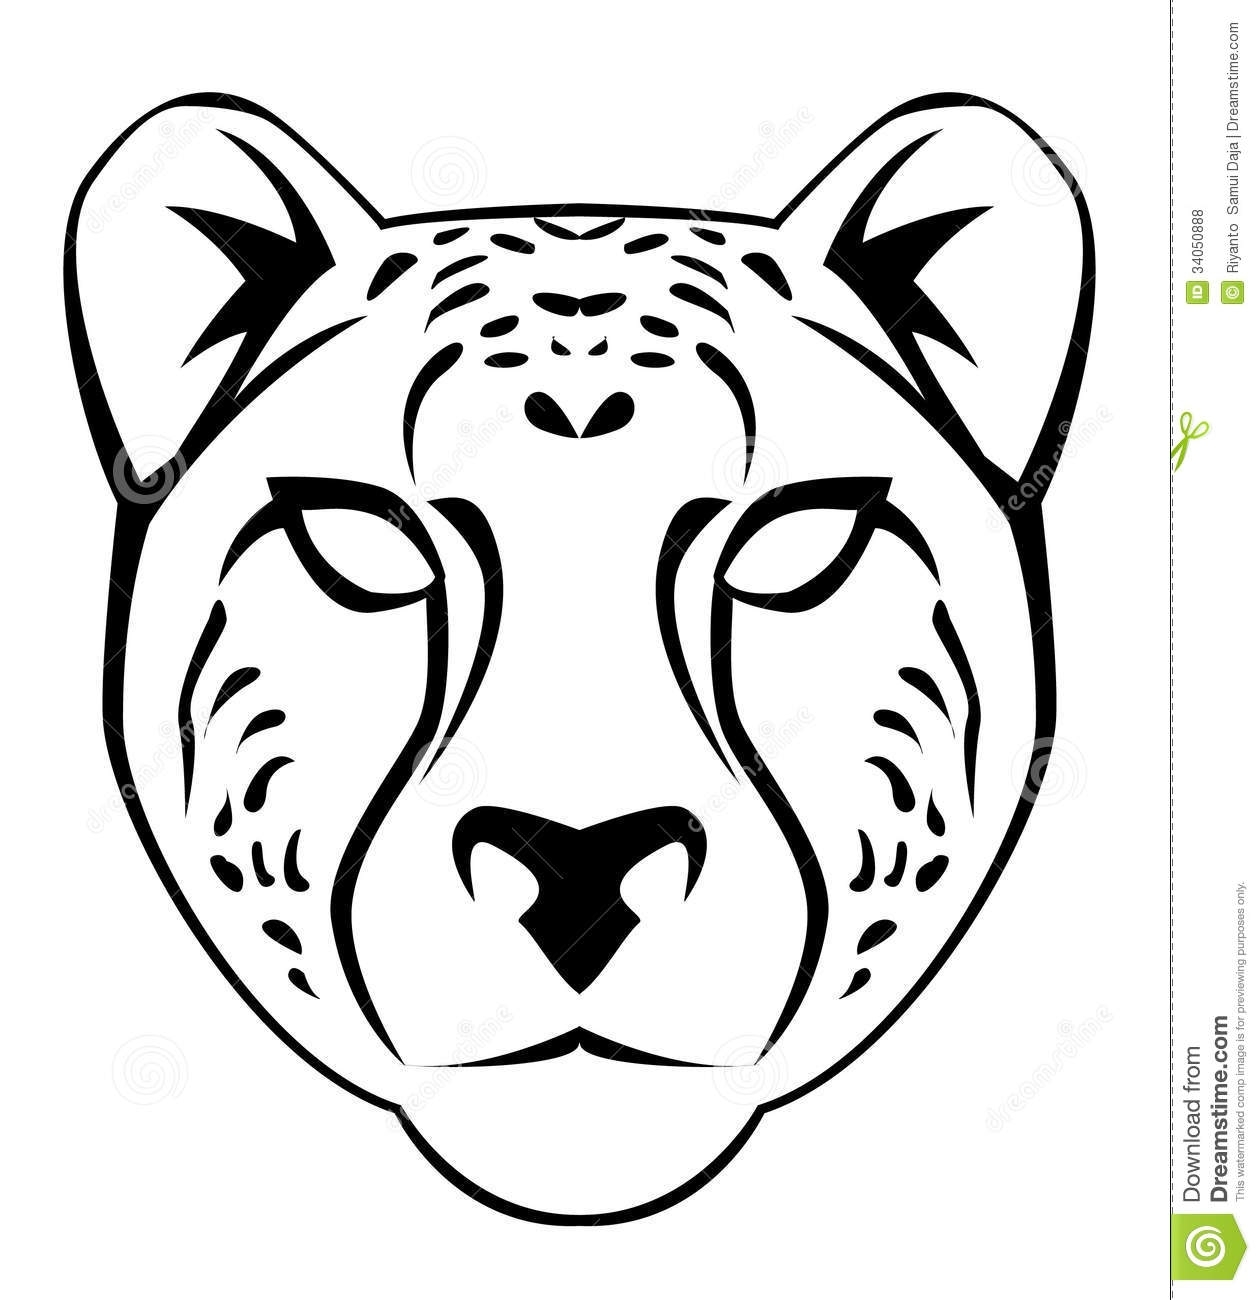 Easy Cheetah Drawing at GetDrawings | Free download